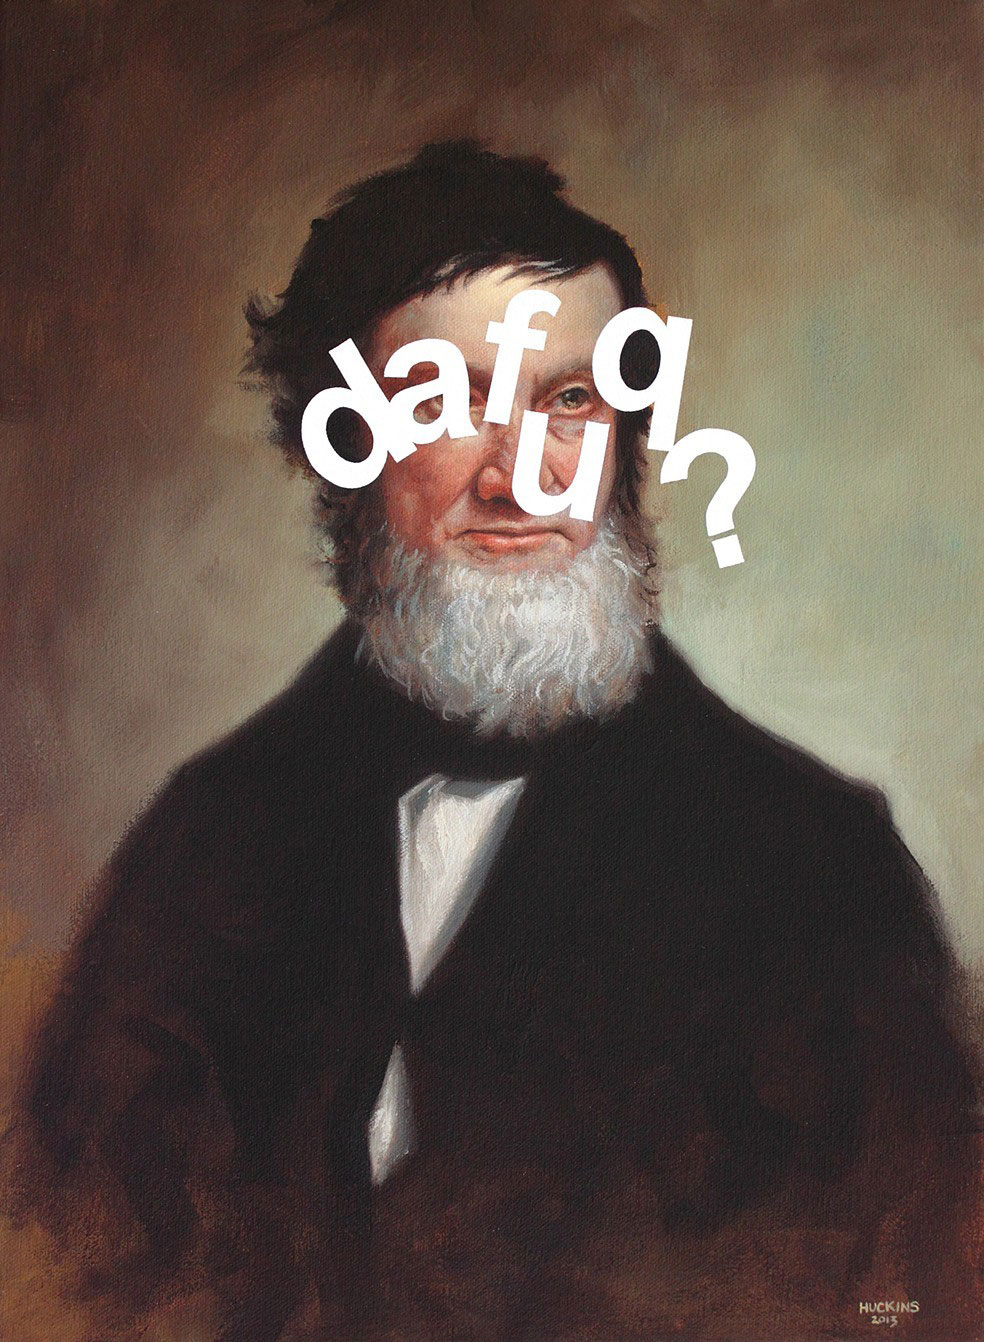 Shawn Huckins, James Beard: The Fuck? (detail), acrylic on canvas, 16 x 12 in (41 x 30 cm), 2013. Private collection, Albany, NY.